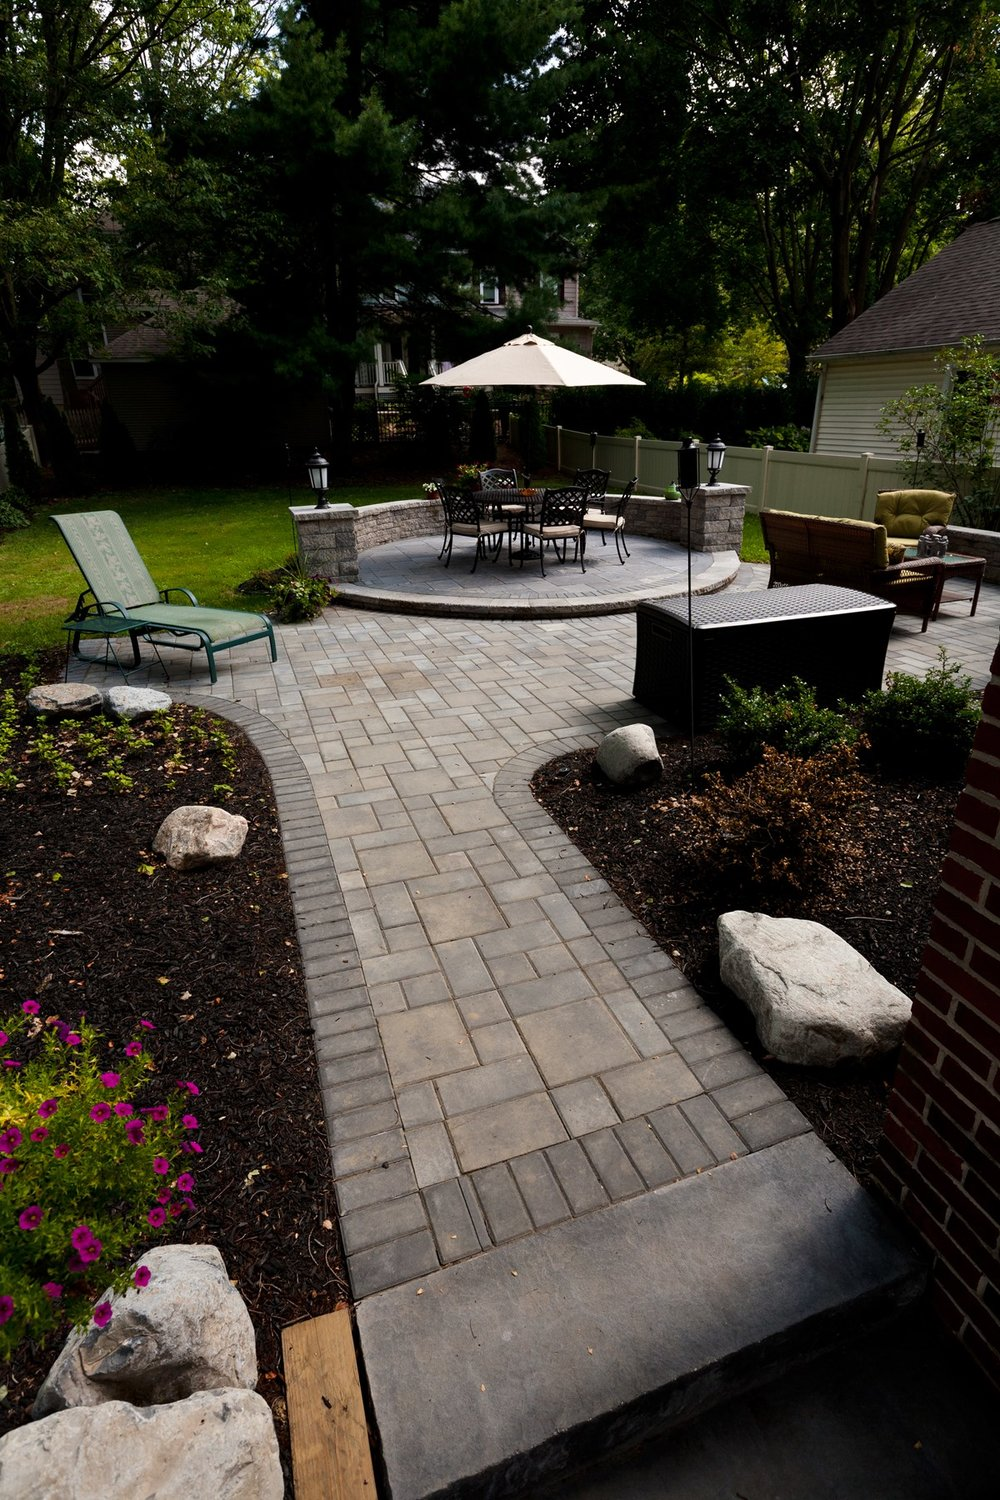 725-walkways-walls-patio-pavers.jpg